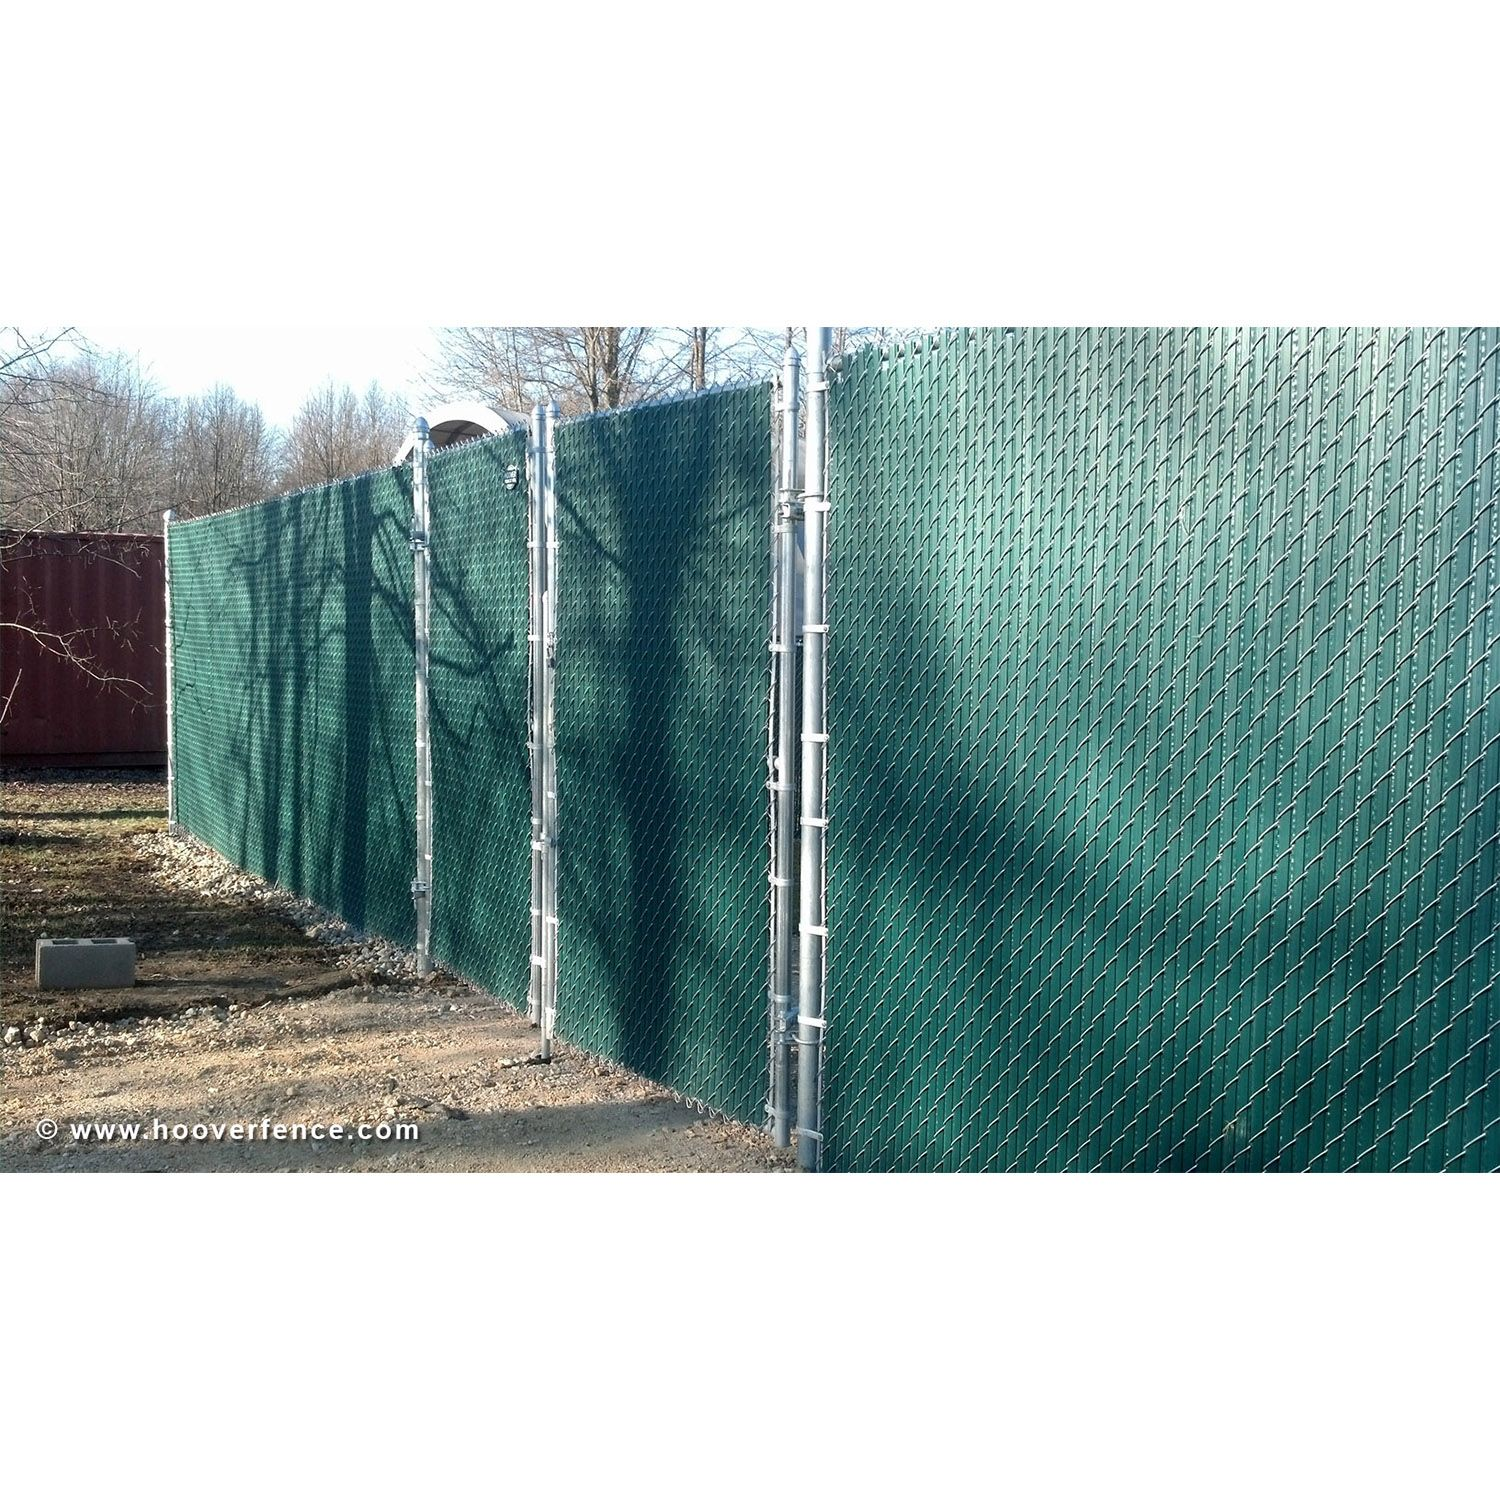 Chain Link Fence Slats Winged Style Hoover Fence Co